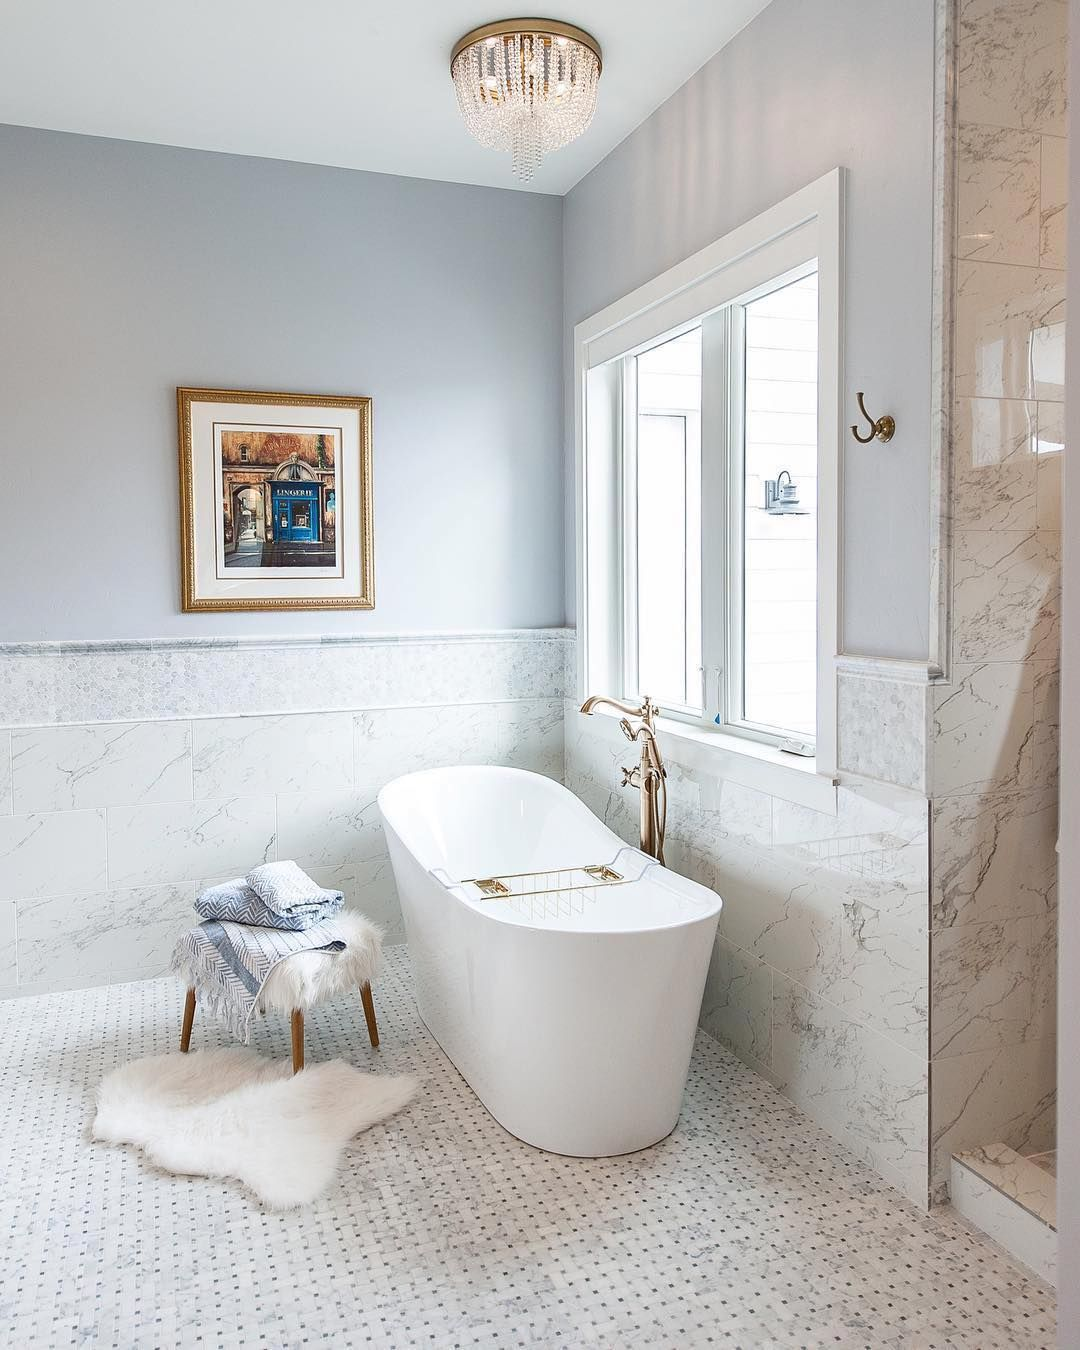 A Dreamy Bathroom Featuring Carrara Marble Tile That Gorgeous Tub